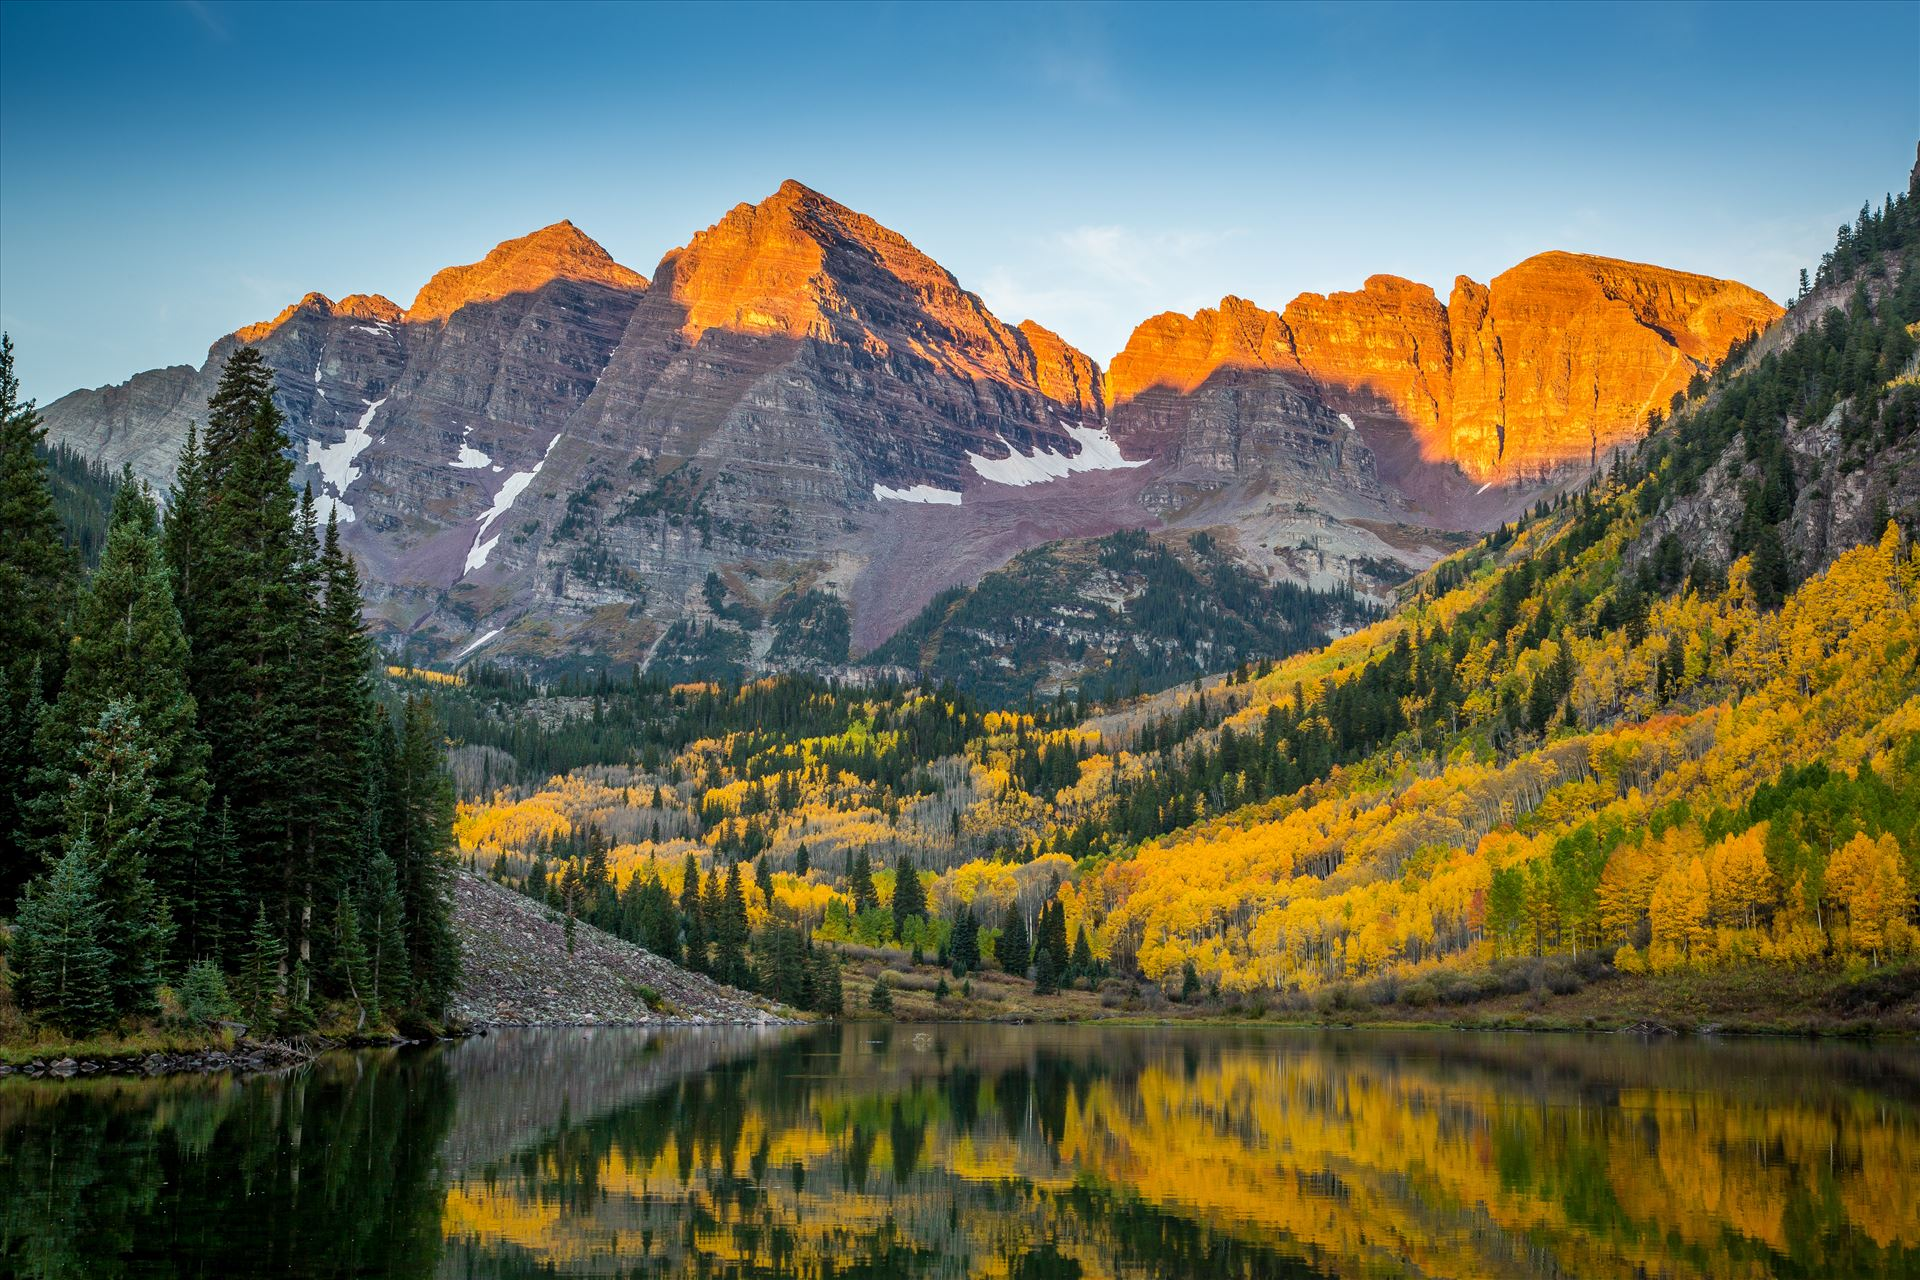 Maroon Bells Fall Sunrise - The rising sun lights the peaks of the Maroon Bells. by D Scott Smith